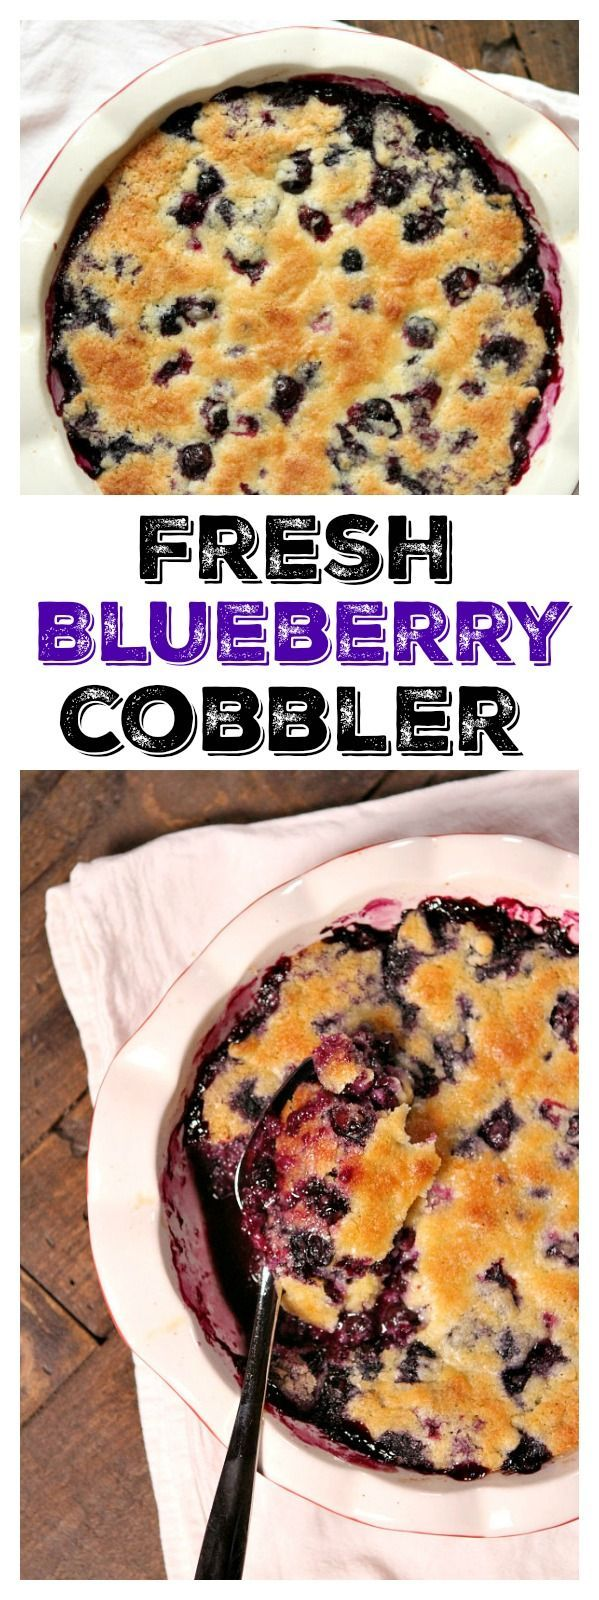 Easy Fresh Blueberry Cobbler recipe : the perfect summer dessert recipe. This cobbler is amazing served warm with a scoop of vanilla ice cream. You'll want to guzzle the blueberry syrup left in the pan! :: recipe from http://RecipeGirl.com